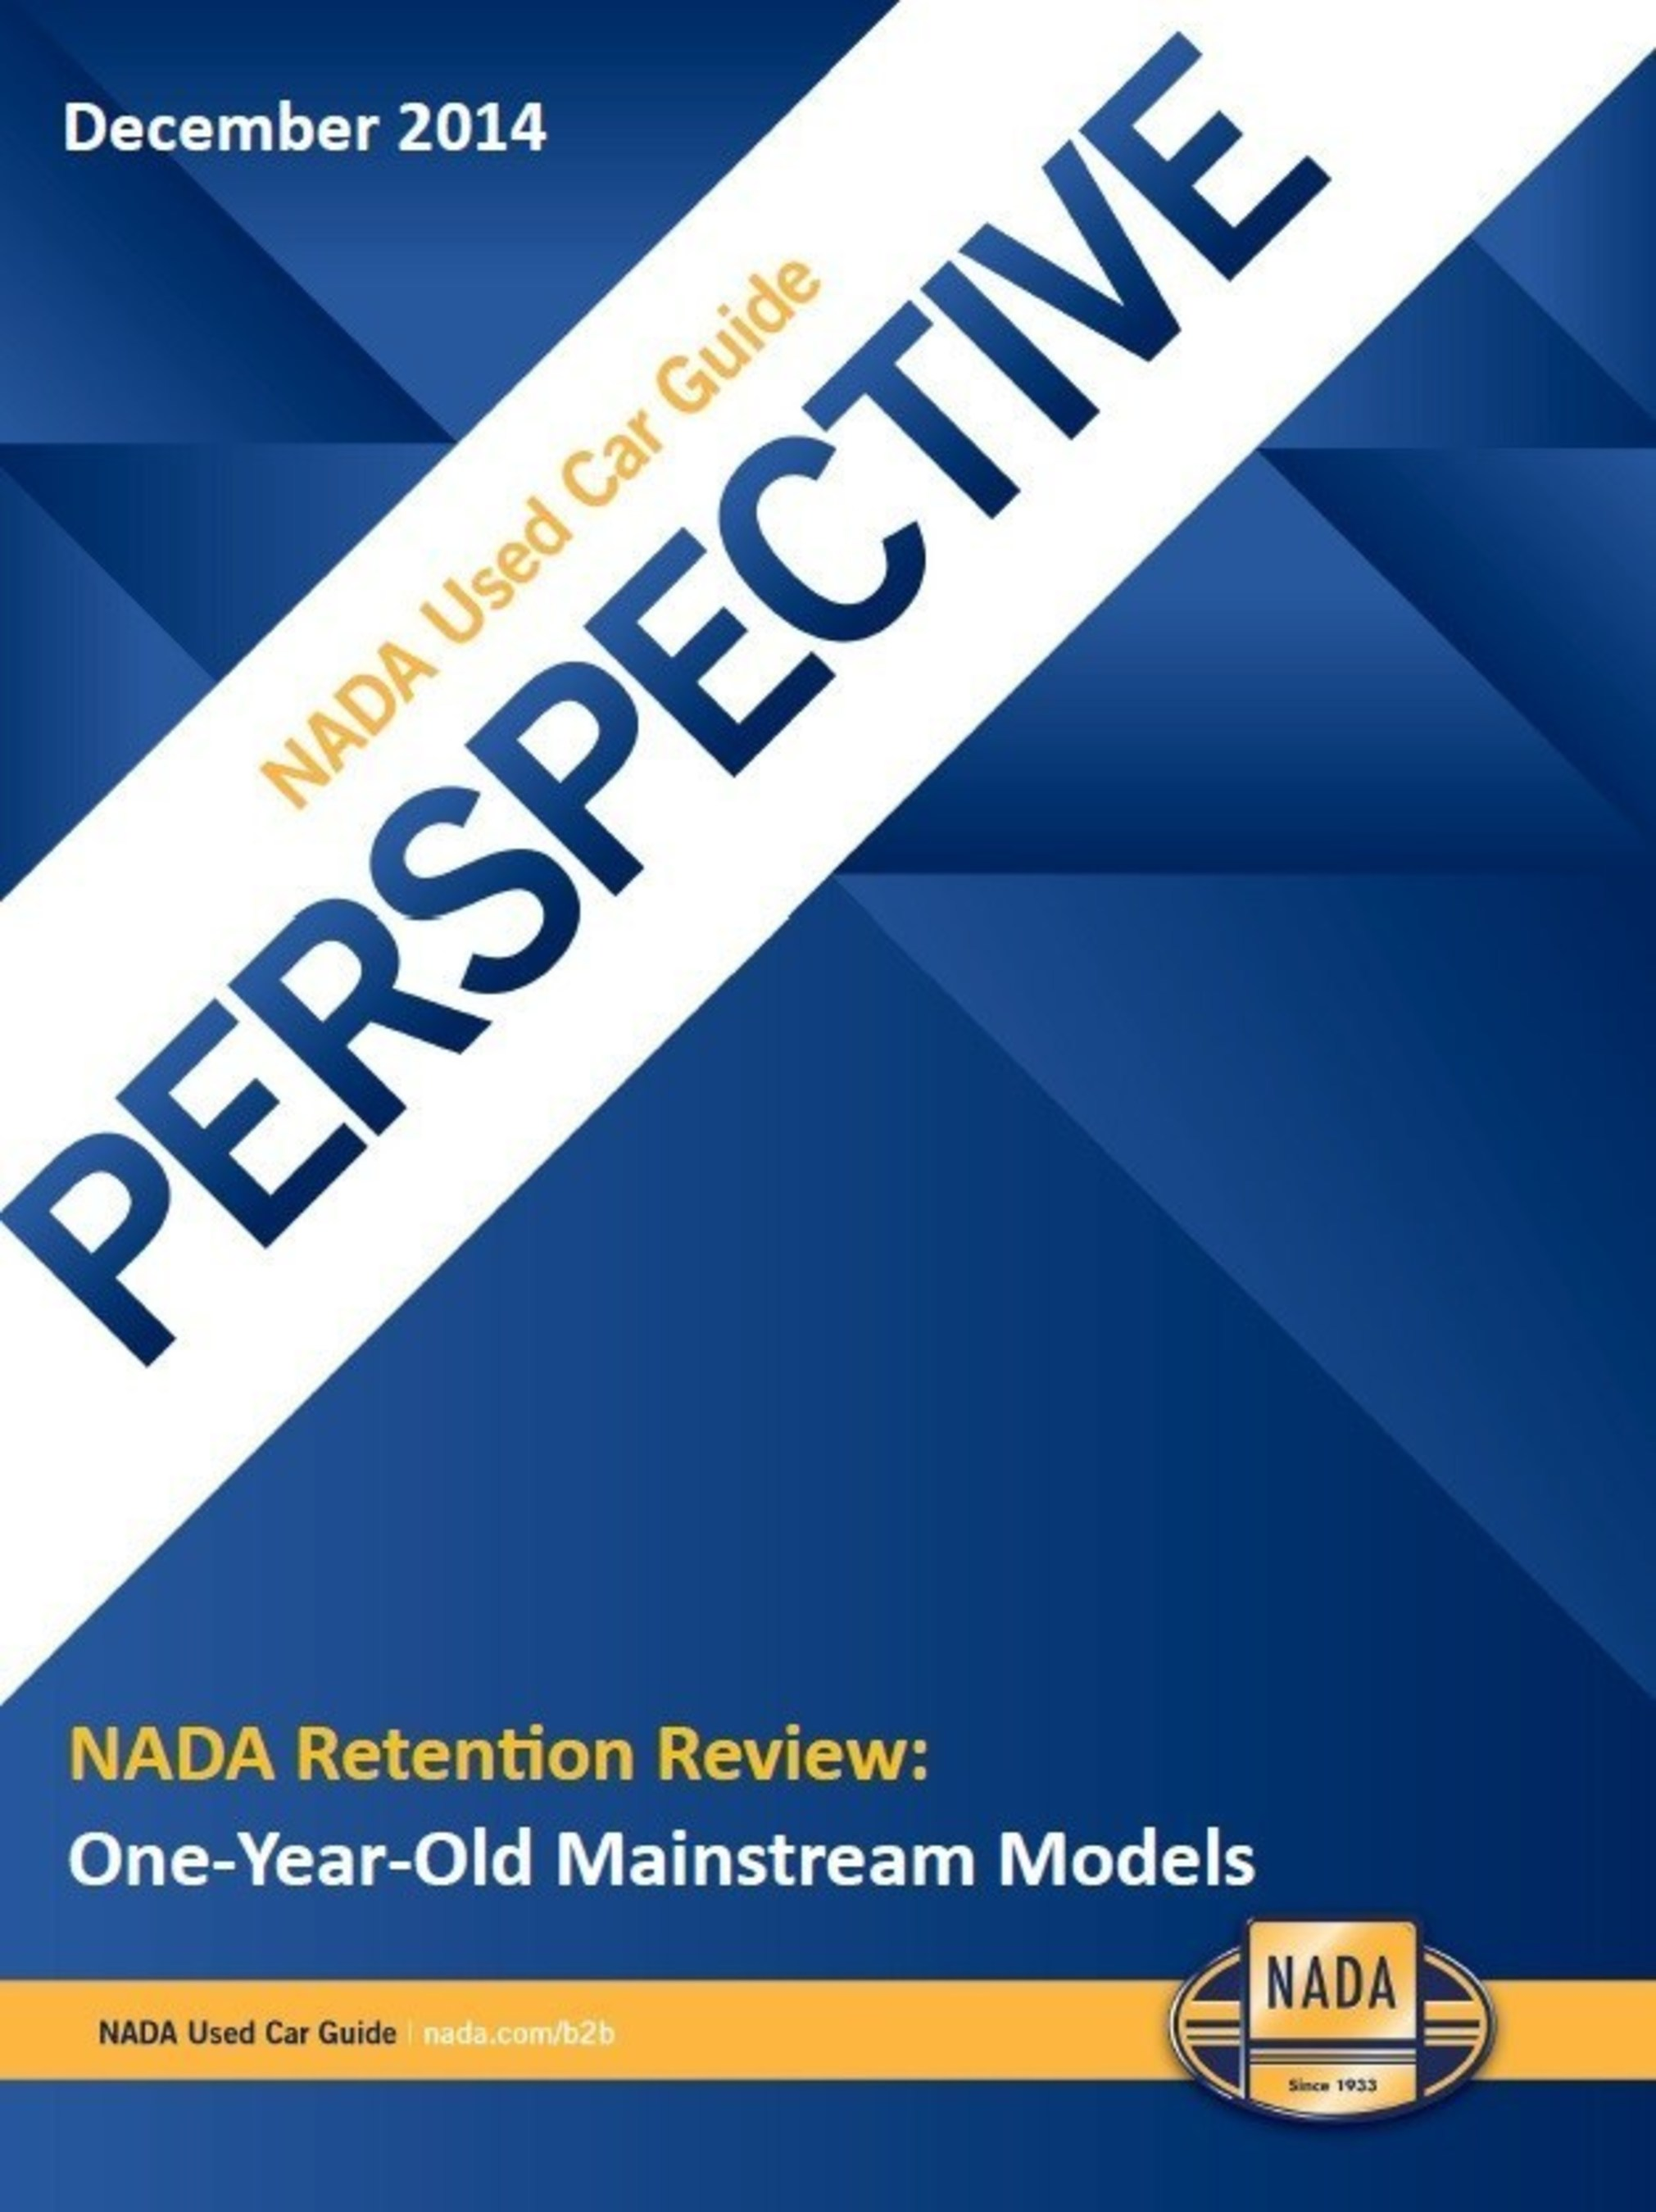 In their final vehicle retention value report for the year, NADA Used Car Guide analysts detailed the one-year performance of all-new, or heavily redesigned mainstream car and truck models.